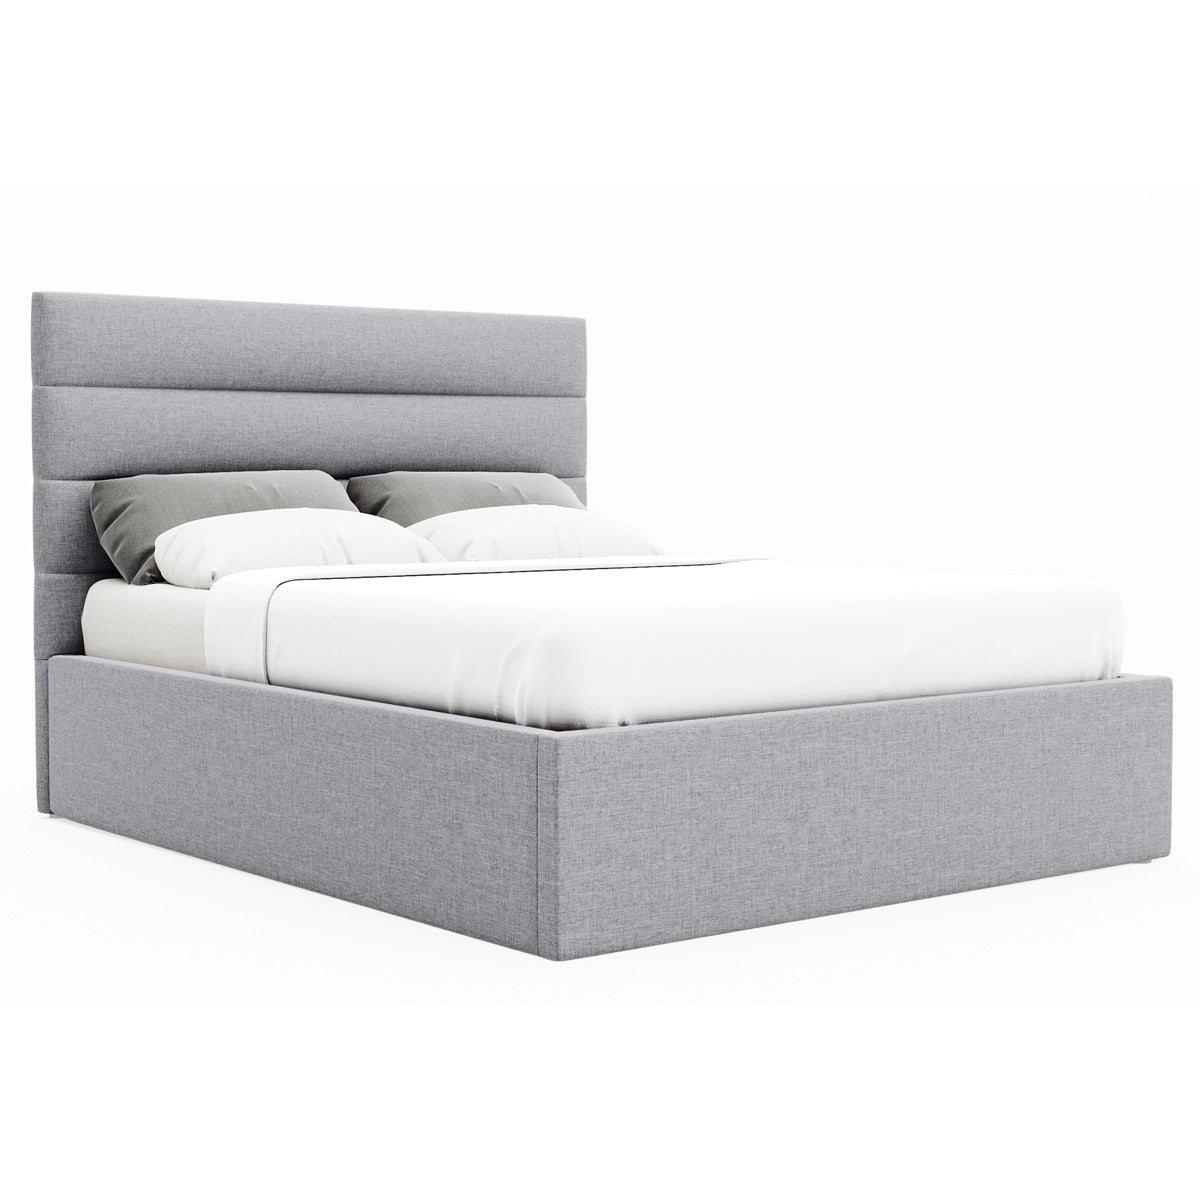 Benny Gas Lift Storage Bed Frame (Grey Fabric)